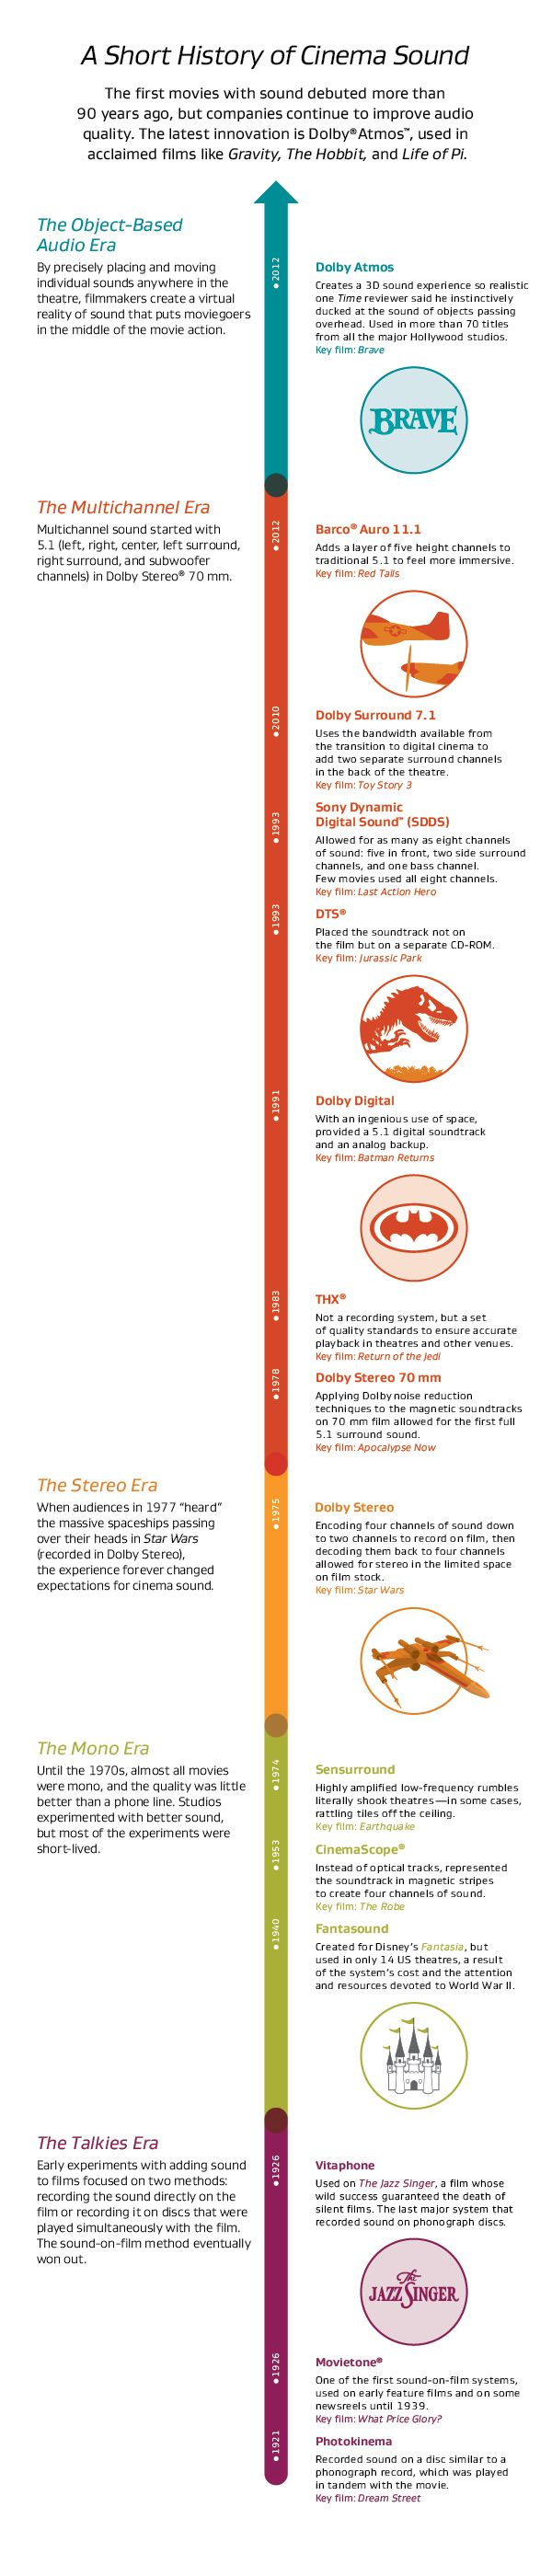 The History of Cinema Sound in Infographics: From 'The Jazz Singer' to 'Gravity' .